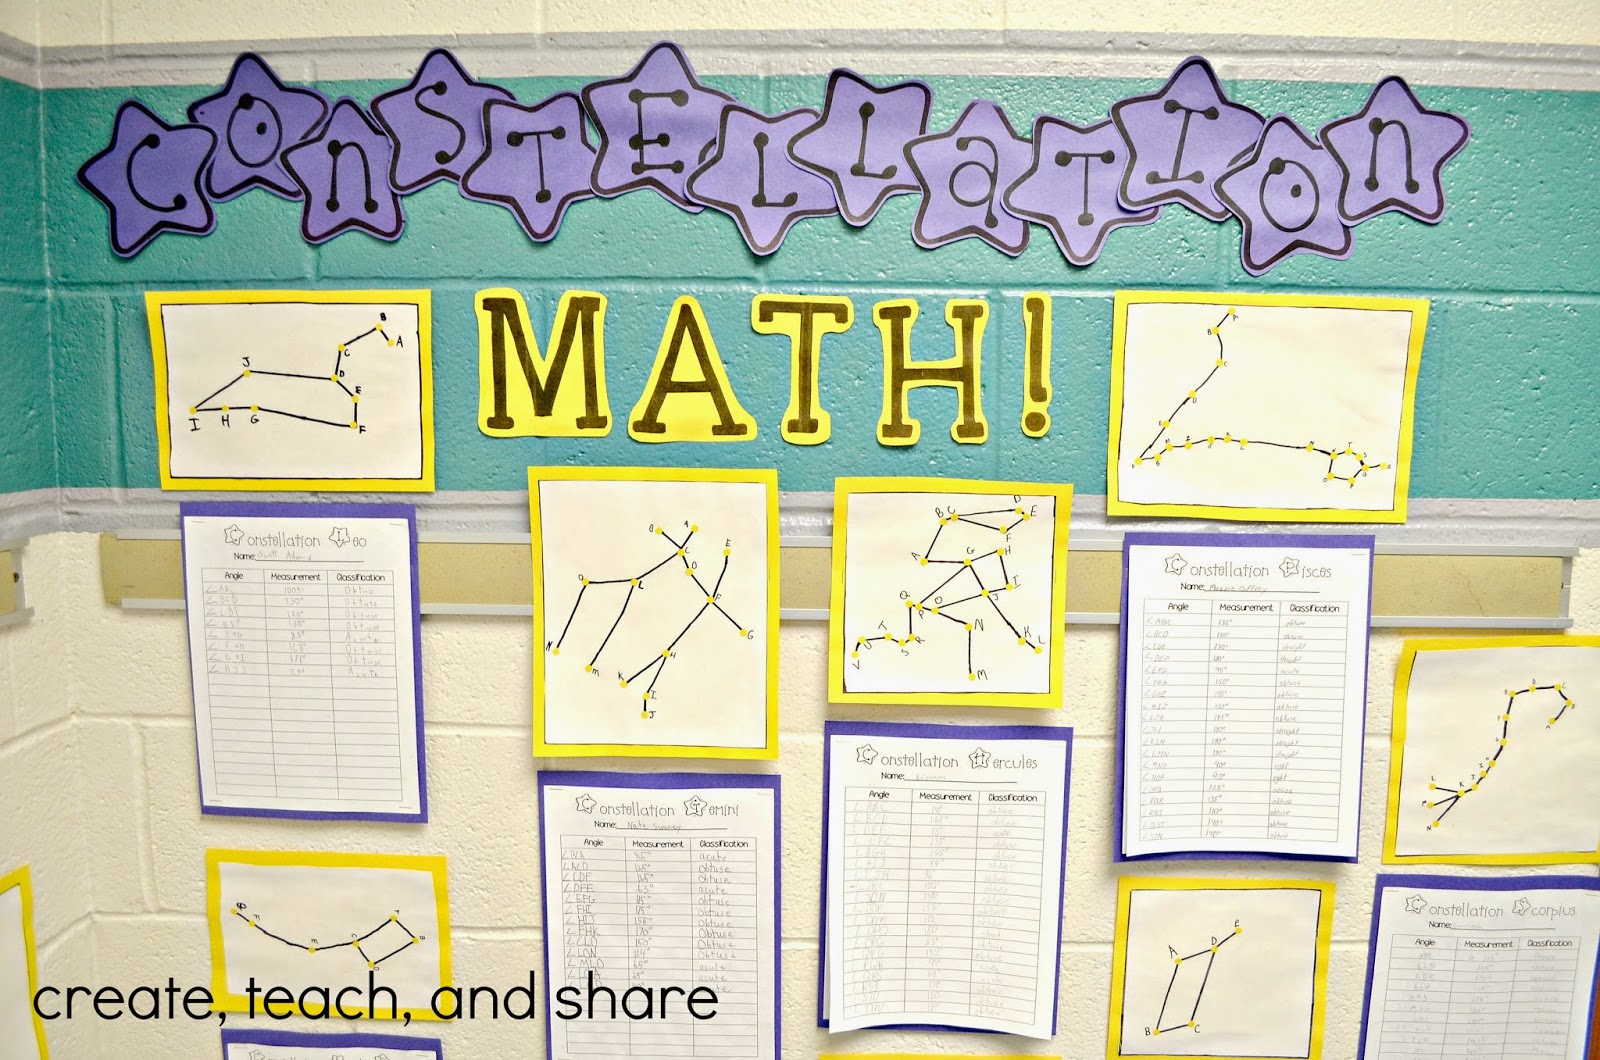 Create Teach And Share Math Meets Astronomy In Room 309